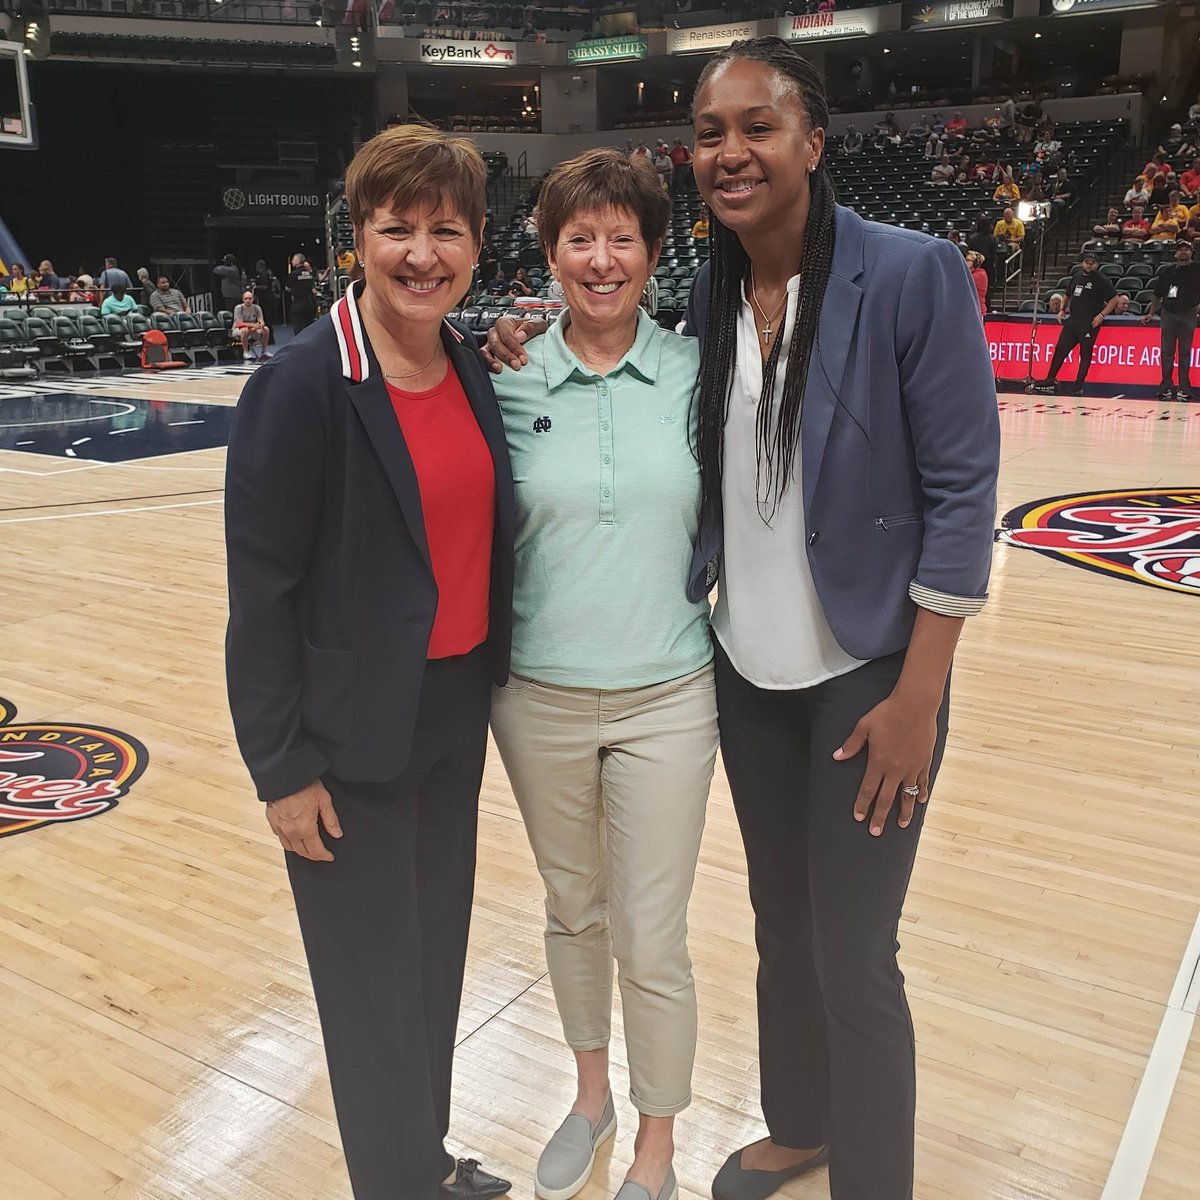 Big s/o to @ndwbb @MuffetMcGraw - a legend both on and off the court! ❤🤗 Thank you for being a solid force on the court with your demeanor, your style and your presence. While one chapter closes, another begins!! Here's to the next chapter 💃🏽 #GodBless #Inspiration #Legendary https://t.co/XTql7mFrcj